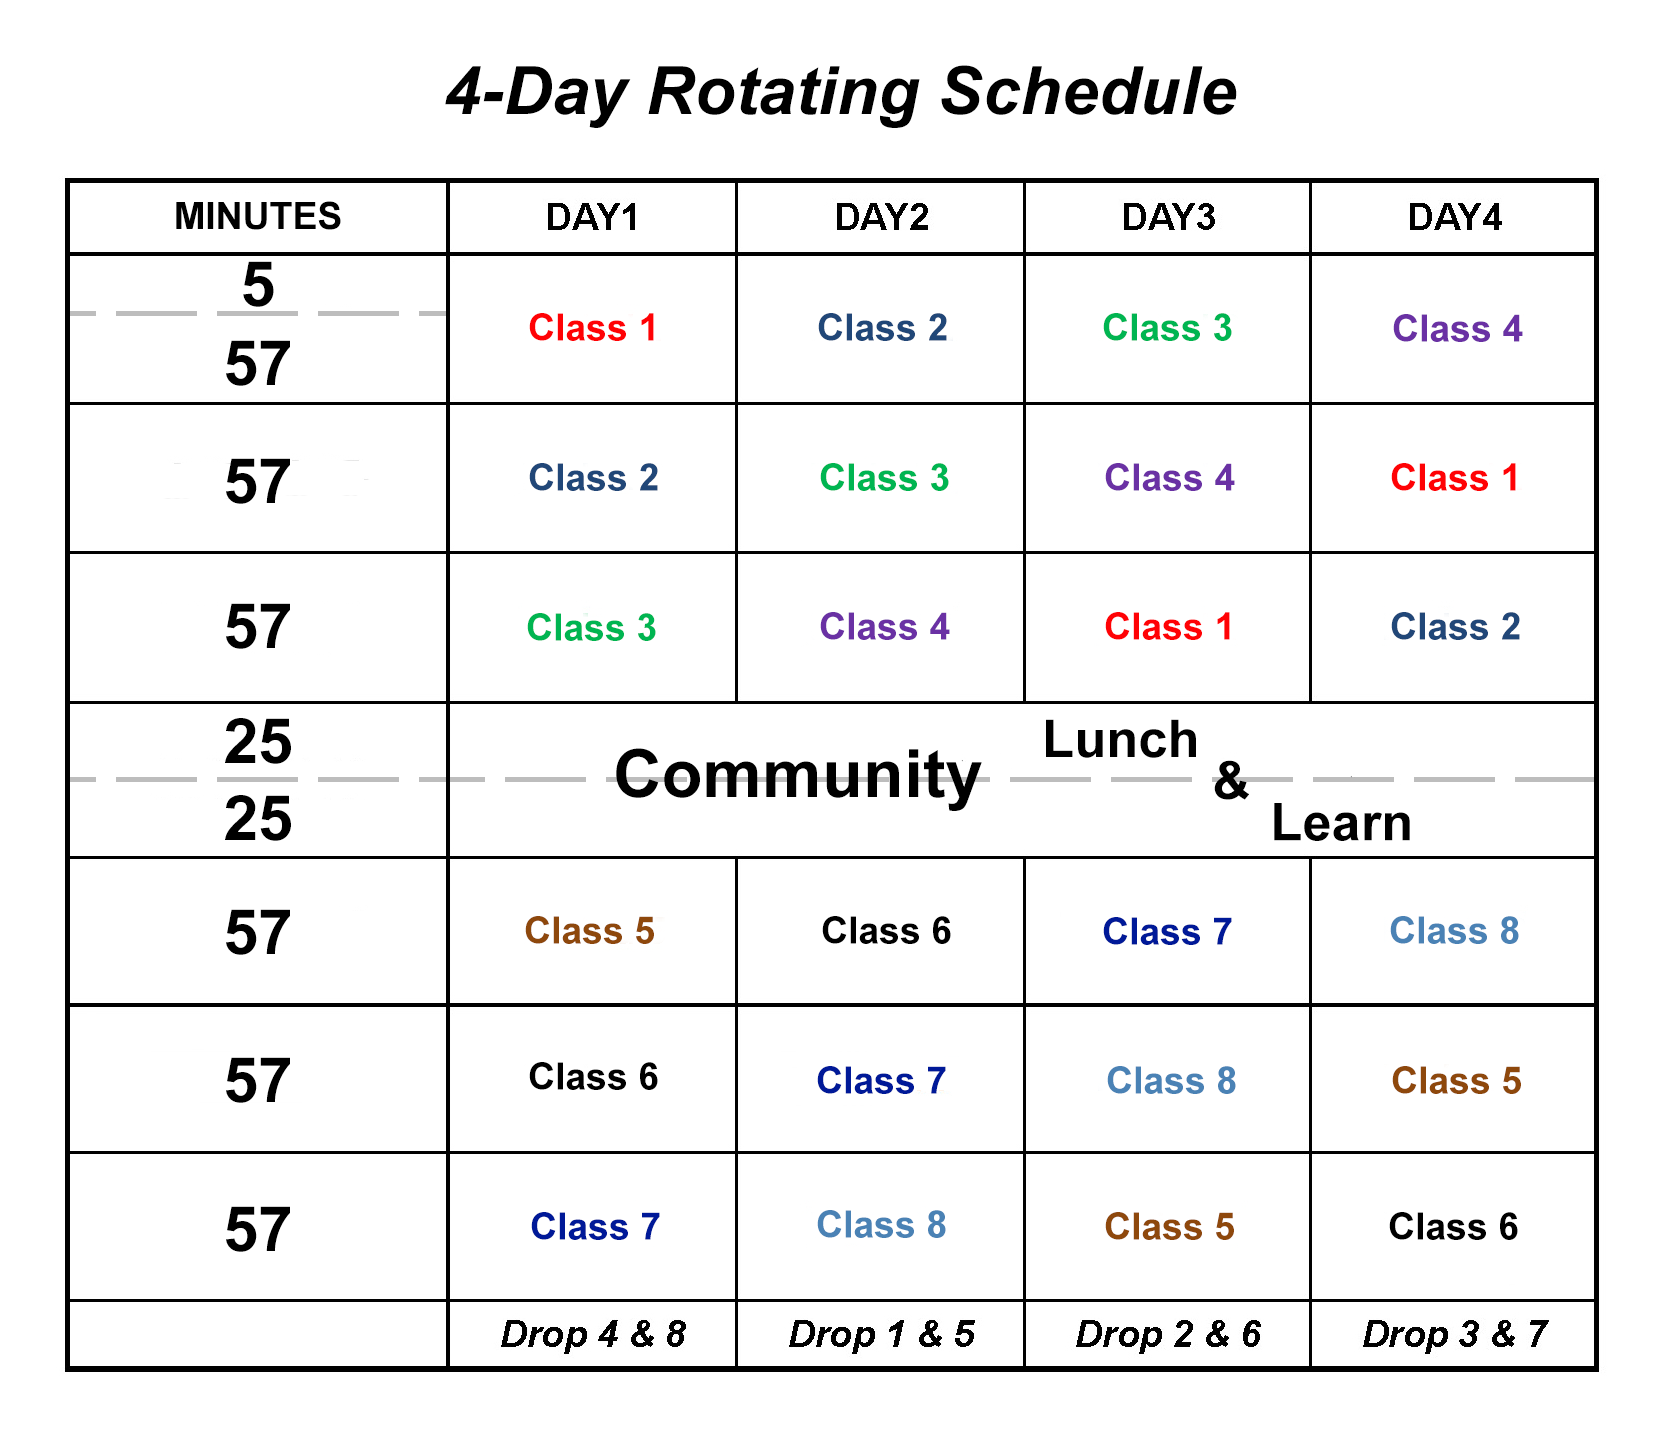 Four-Day Rotating Schedule